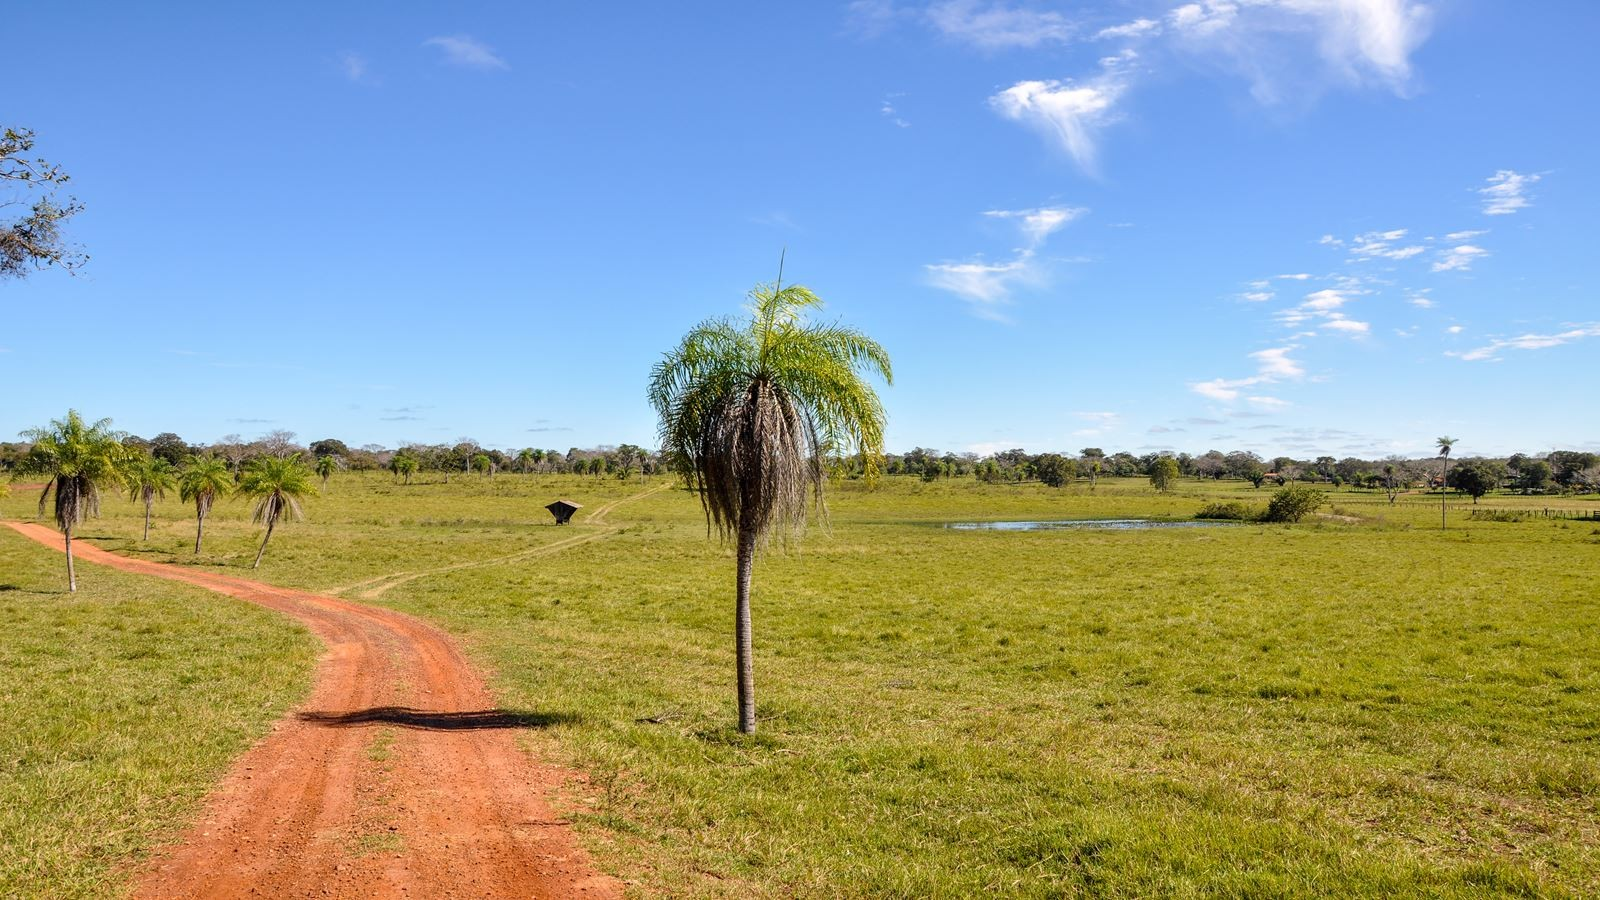 Farm in Pantanal, Mato Grosso (Brazil)